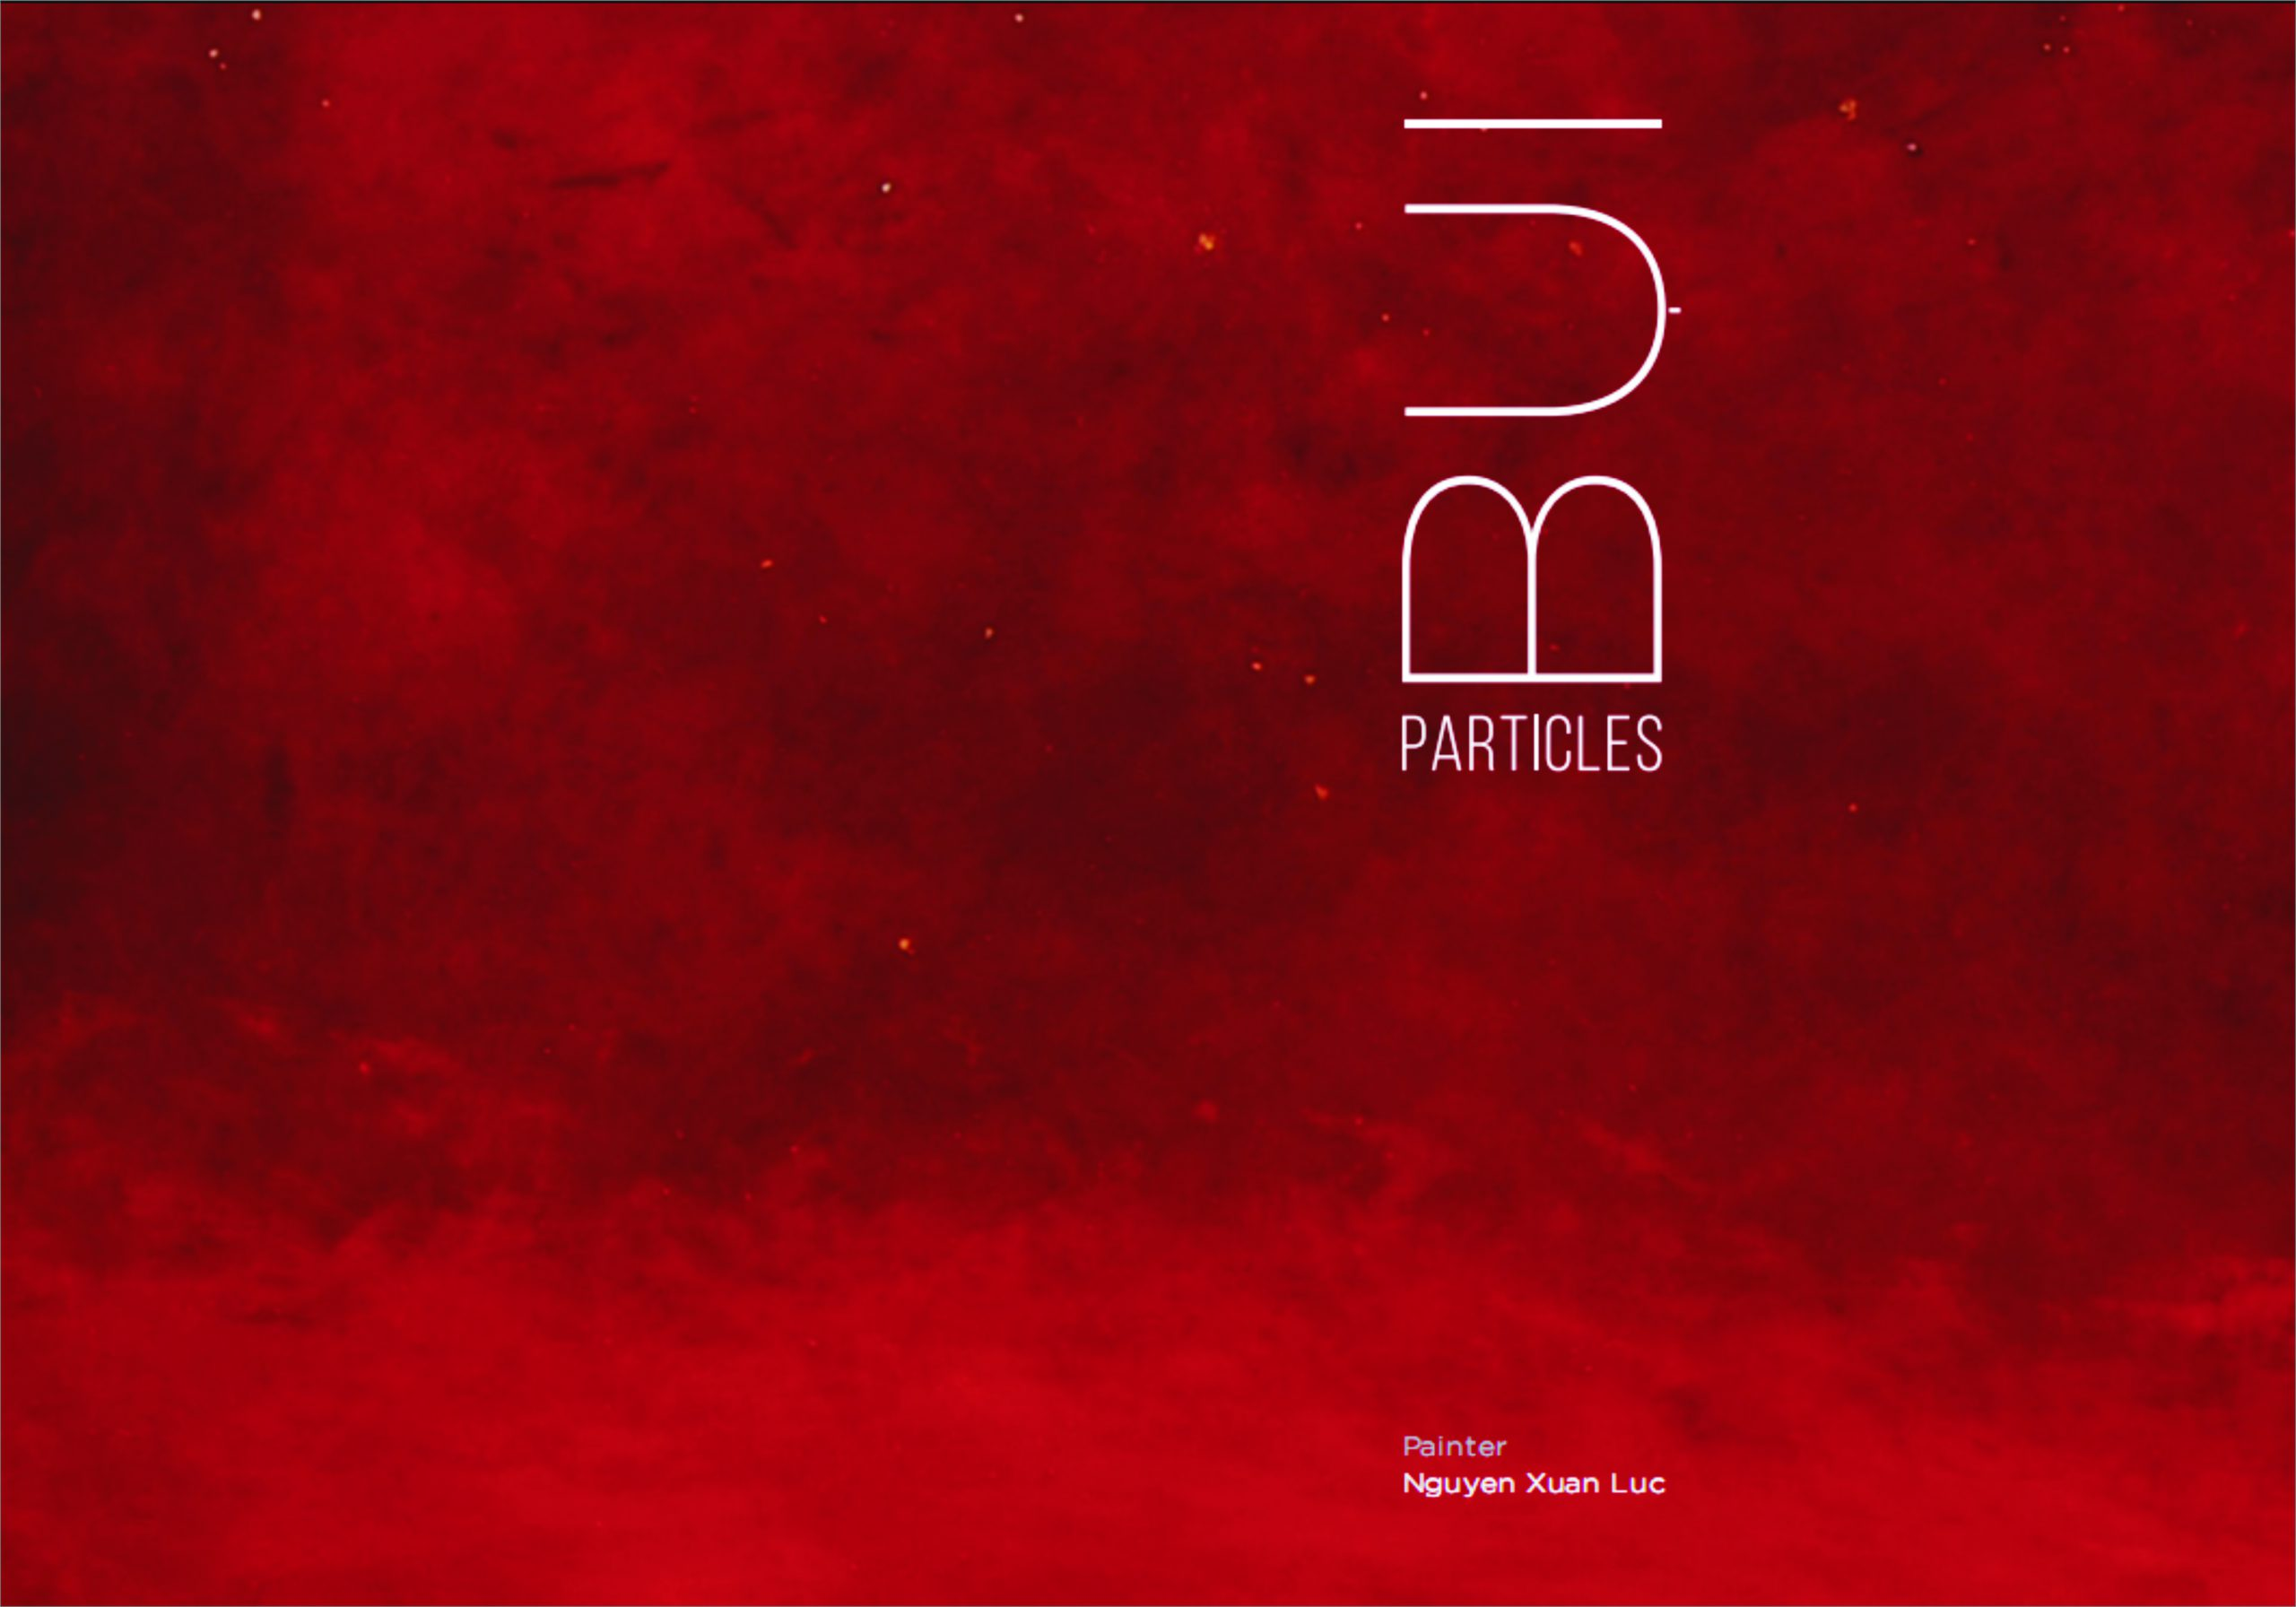 THE PARTICLES SOLO EXHIBITION 2019